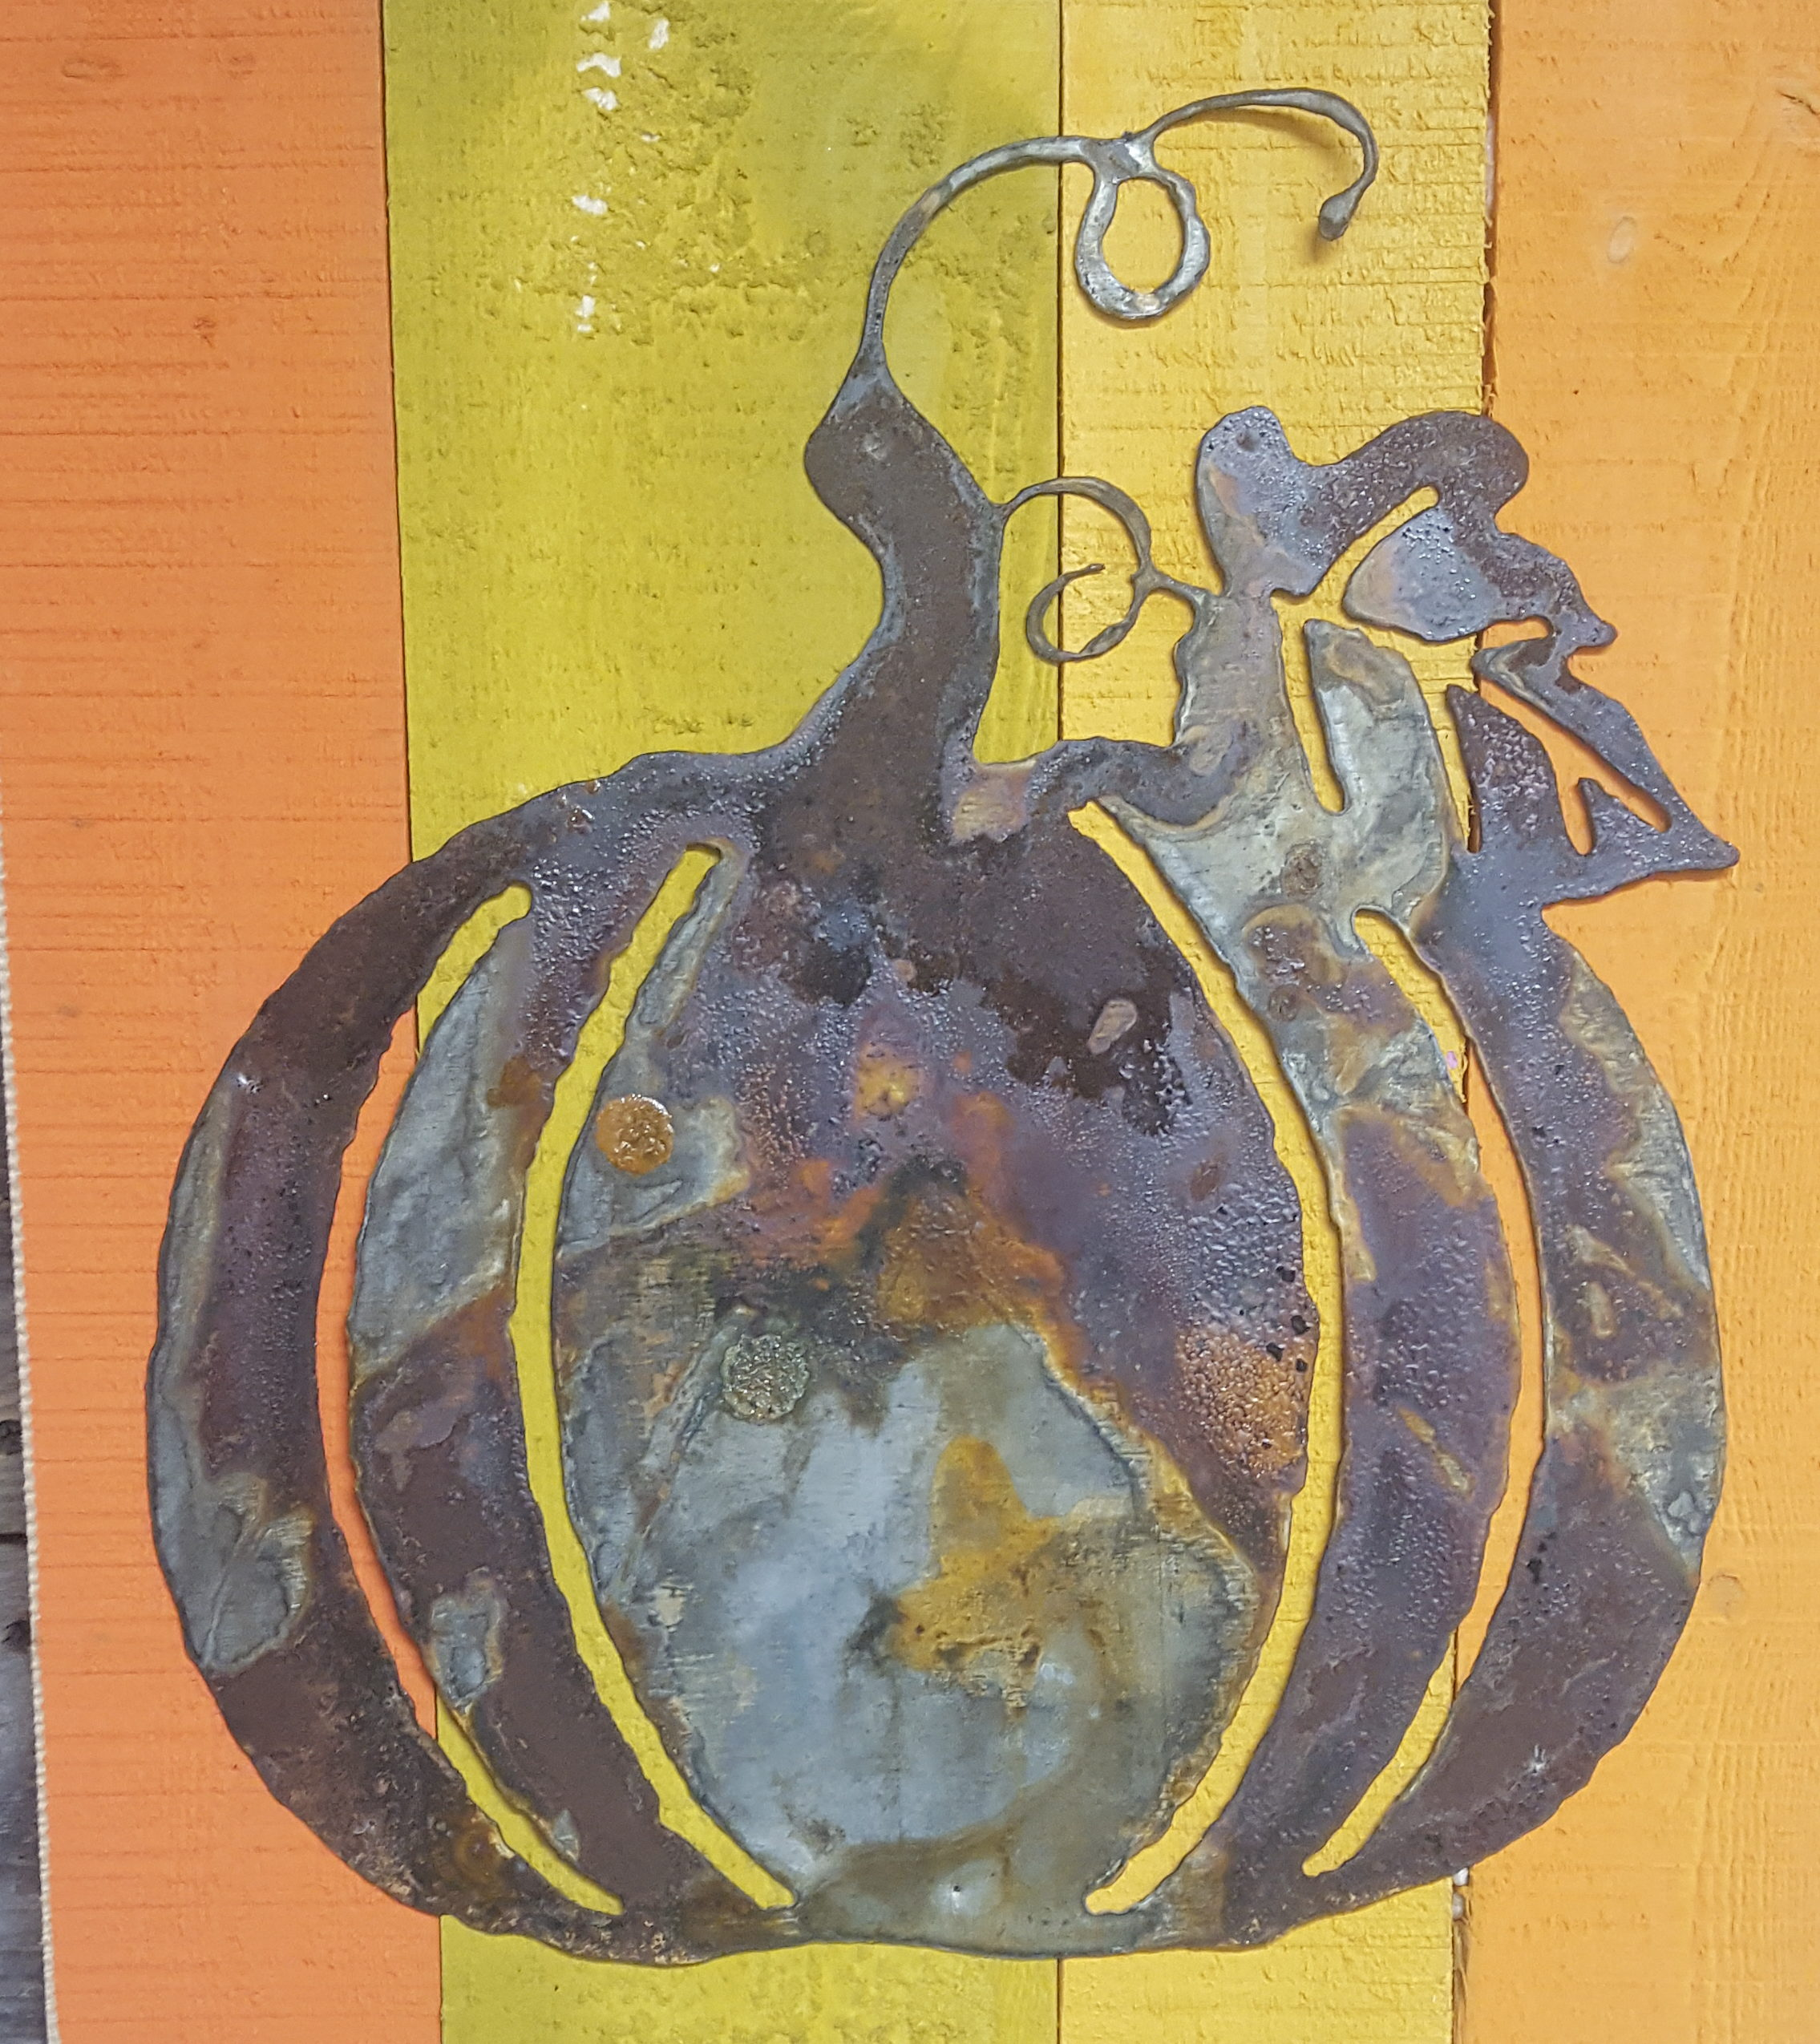 Pumpkin with drindles